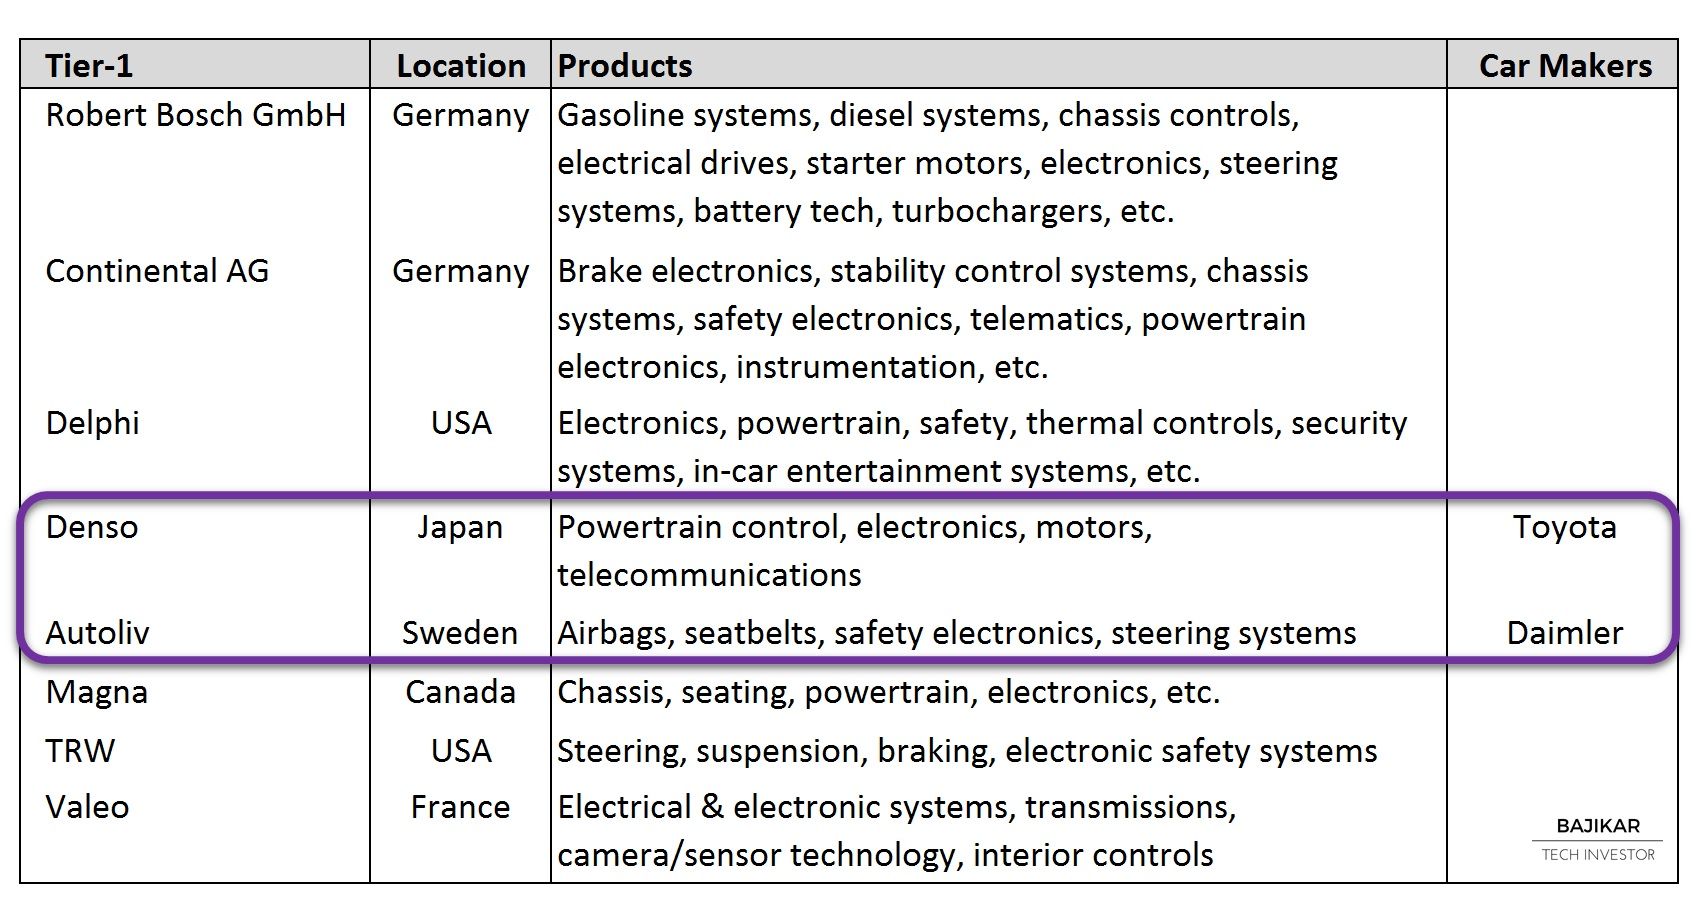 Automotive Tier-1 Suppliers